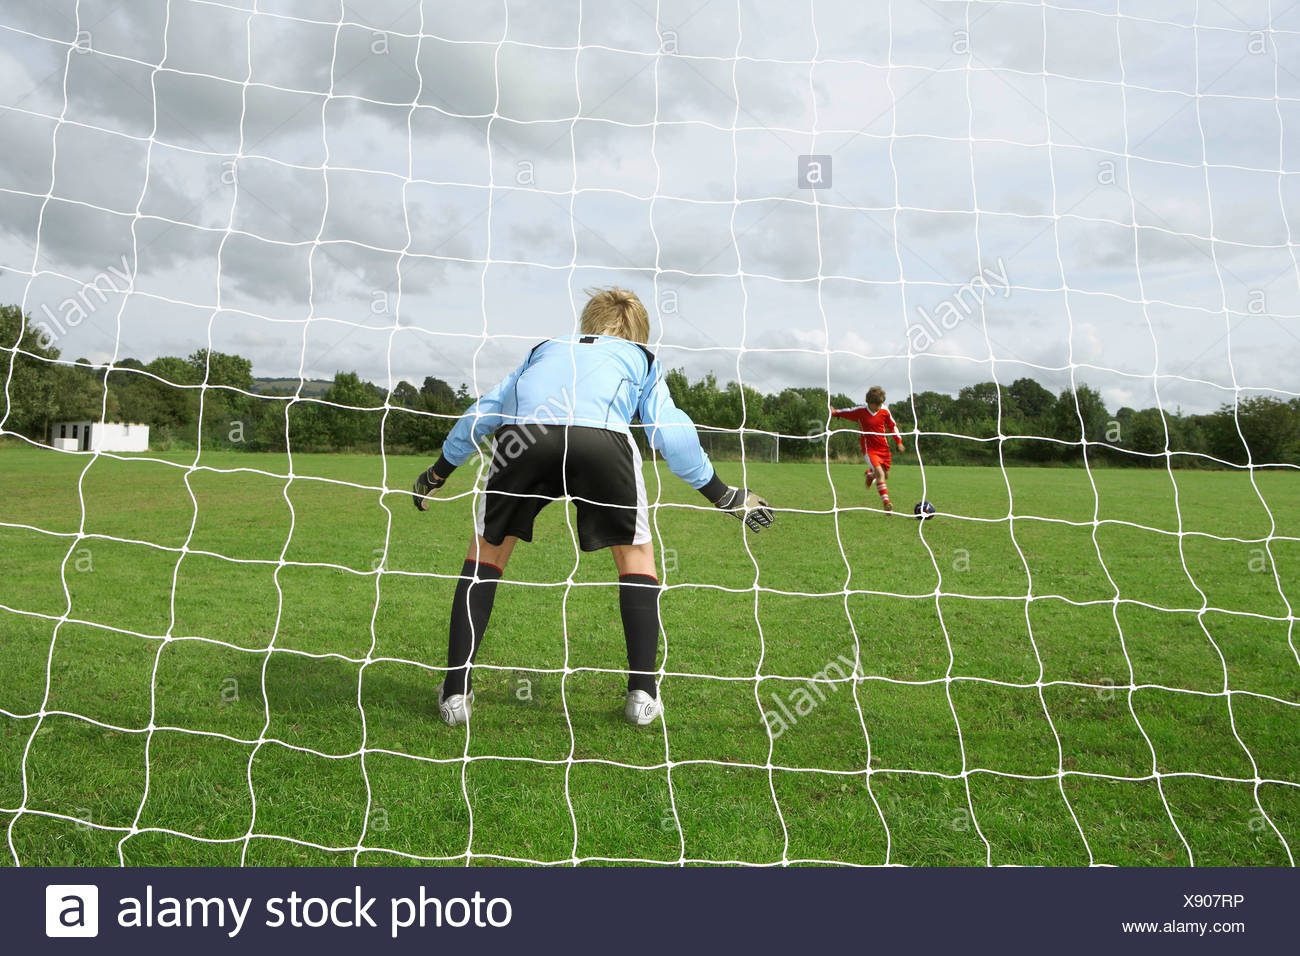 Footballer shooting at goalkeeper - Stock Image